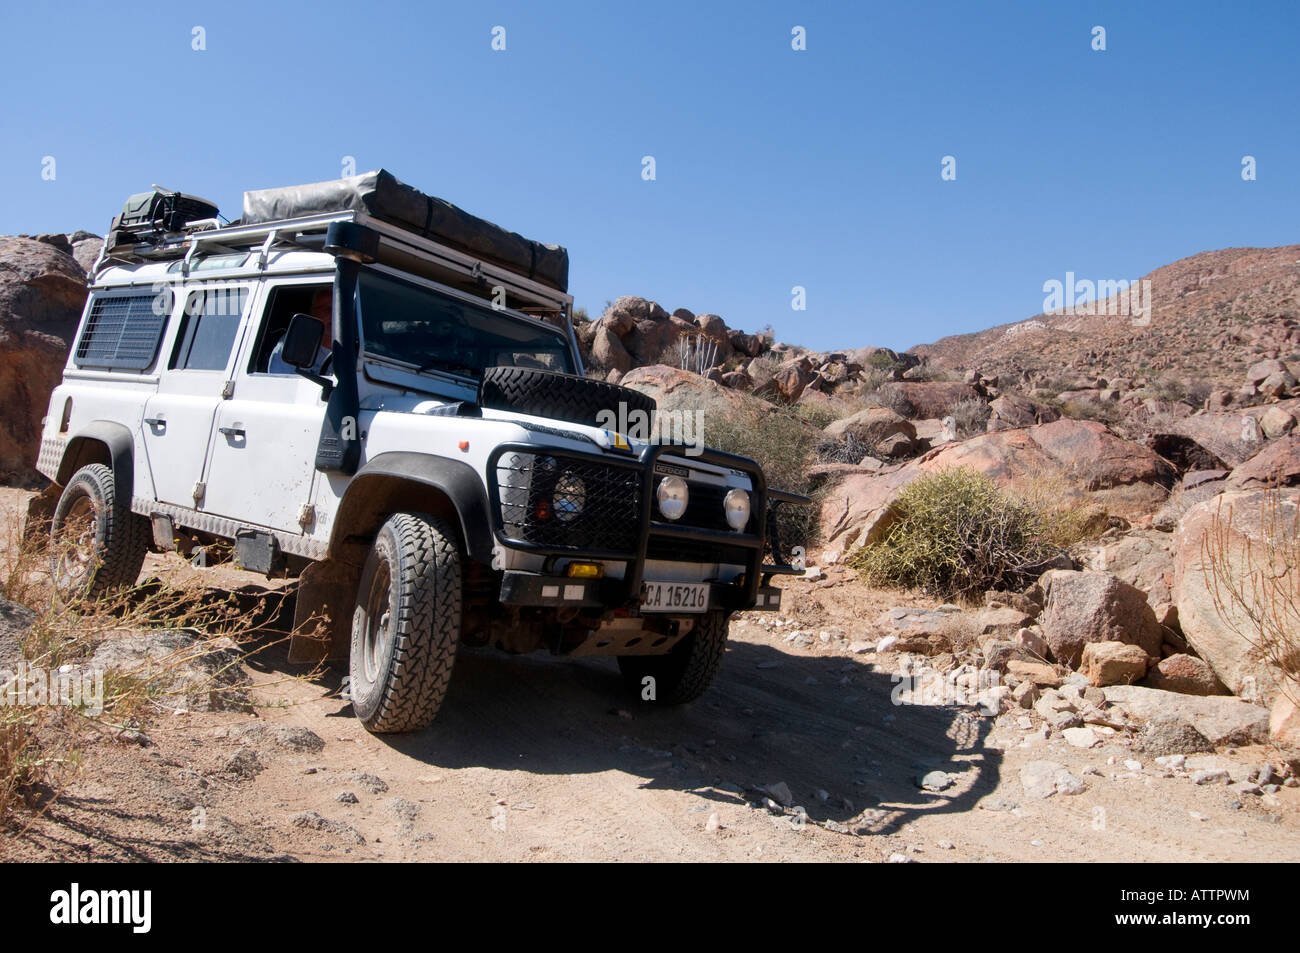 Land Rover 4x4 Stock Photos Images Alamy Ai Ais Richtersveld Transfrontier National Park With Crossing Rocky Pass Image